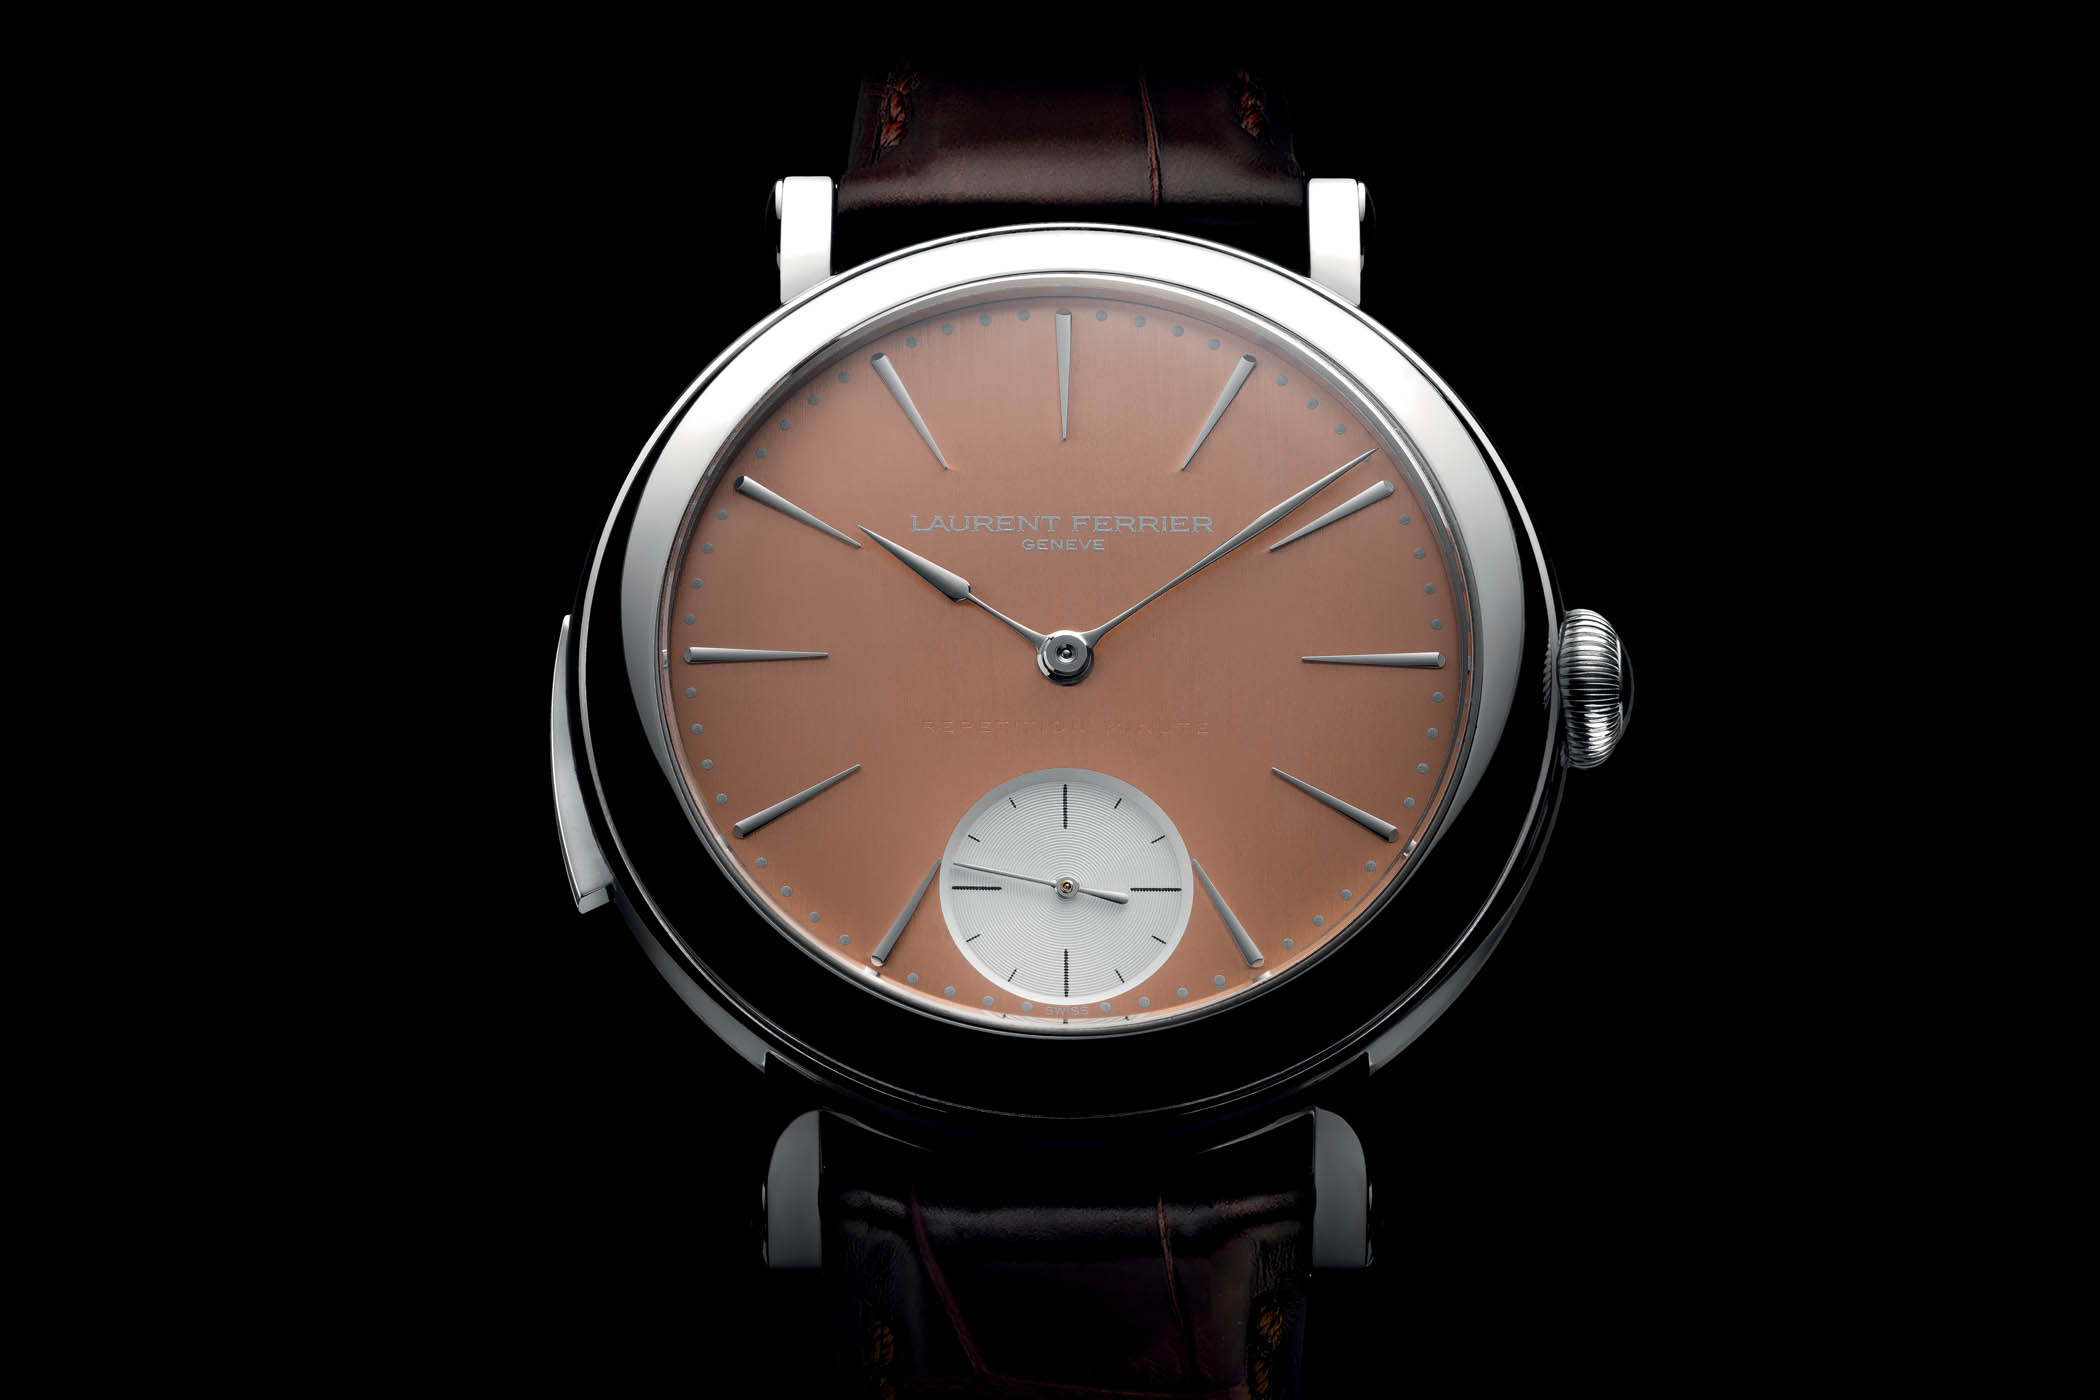 Laurent Ferrier Galet Minute Repeater School Piece - Baselworld 2018